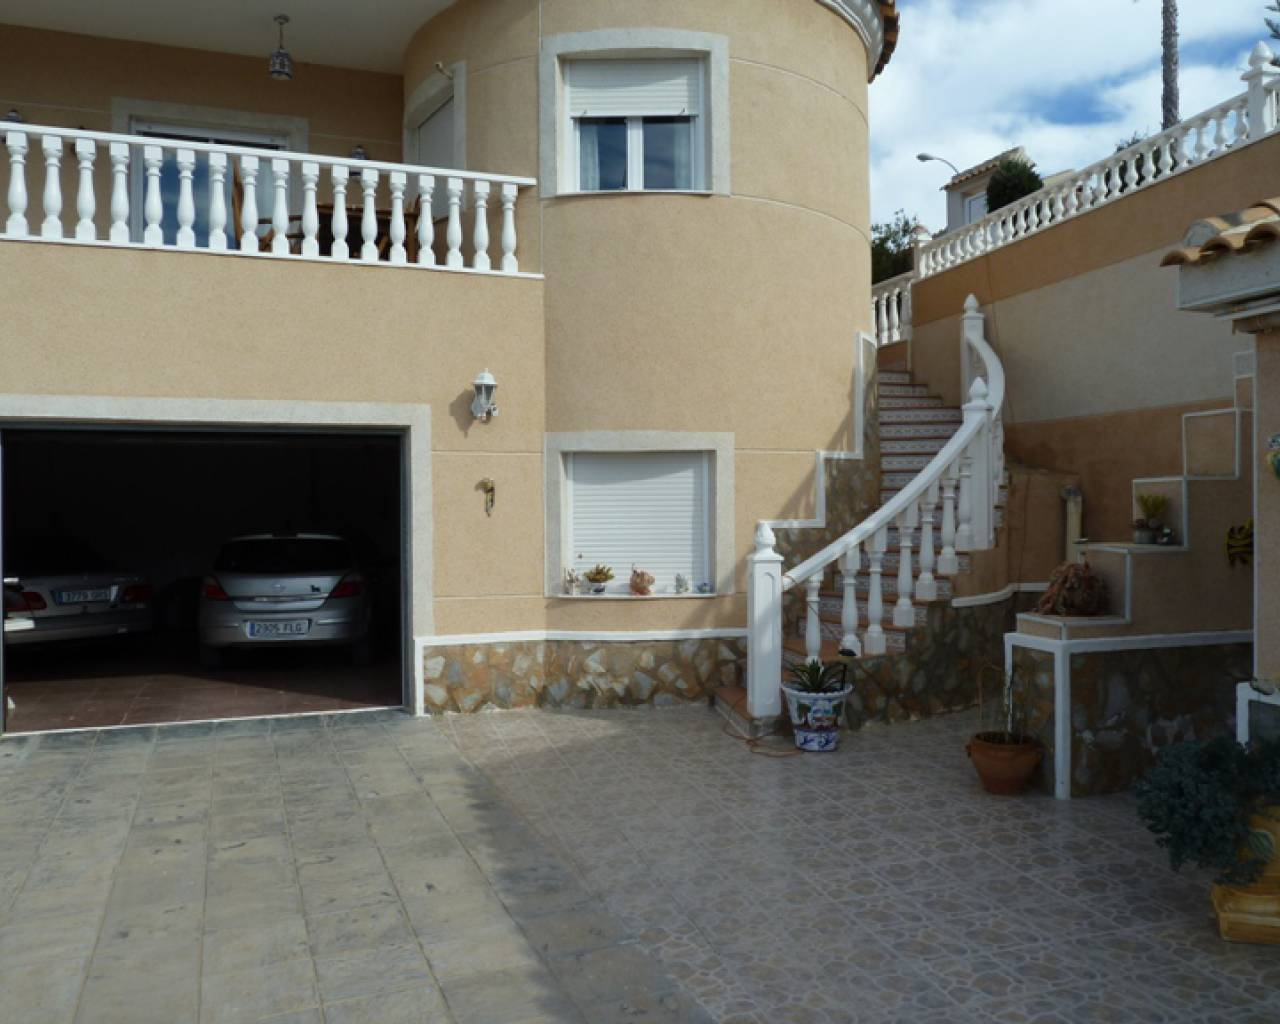 Sale - Detached Villa - Algorfa - Lomas de La Juliana